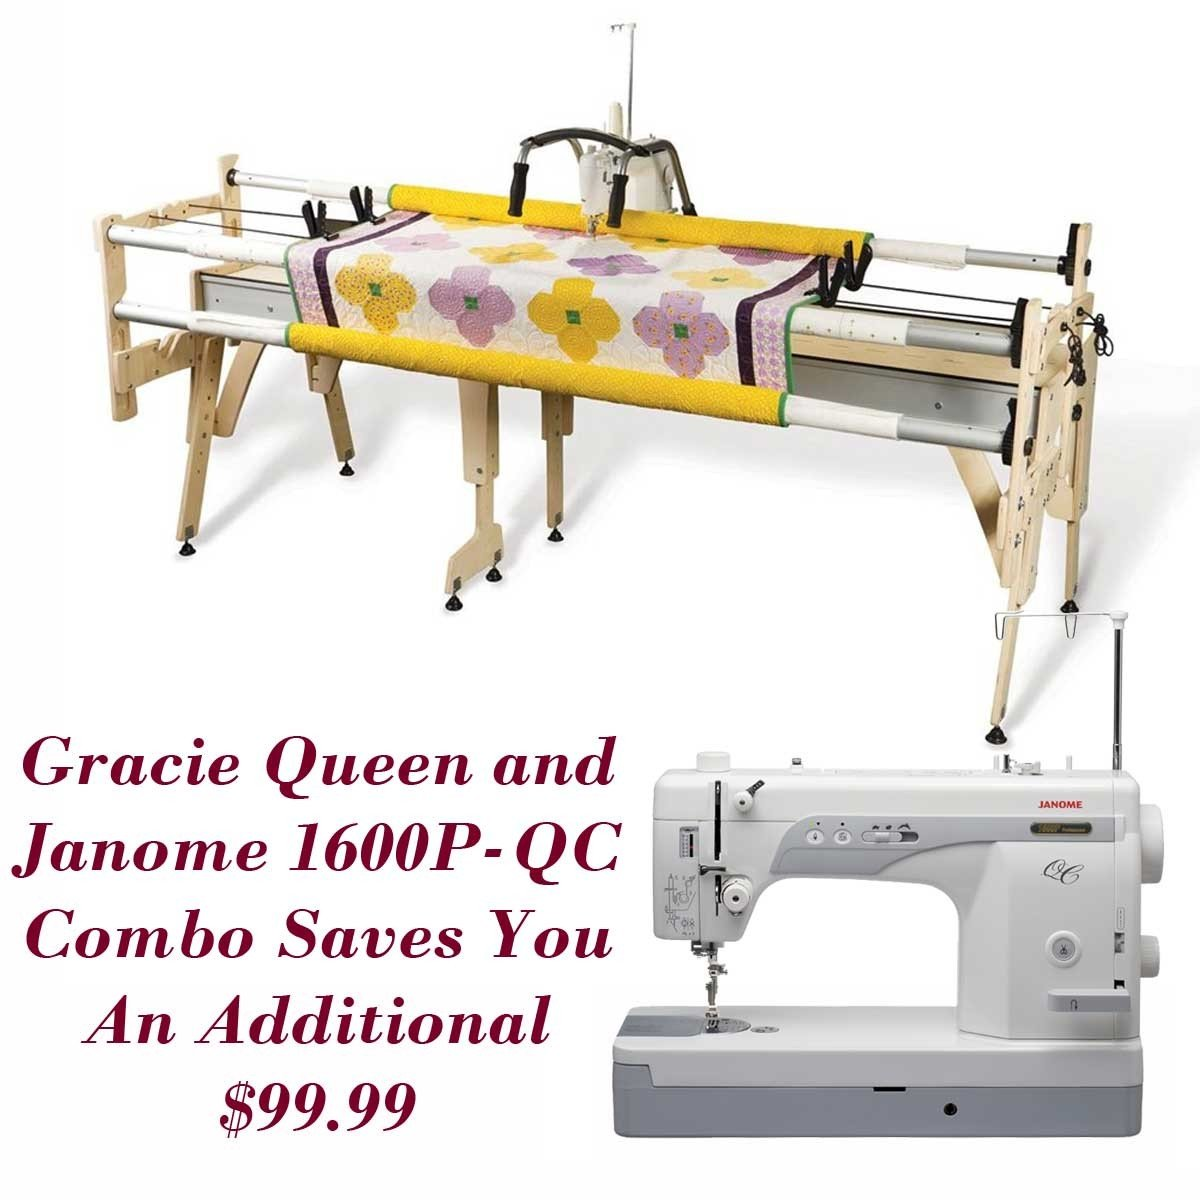 Amazon.com: Janome 1600P-QC Sewing Machine w/ Grace Queen Quilting Frame